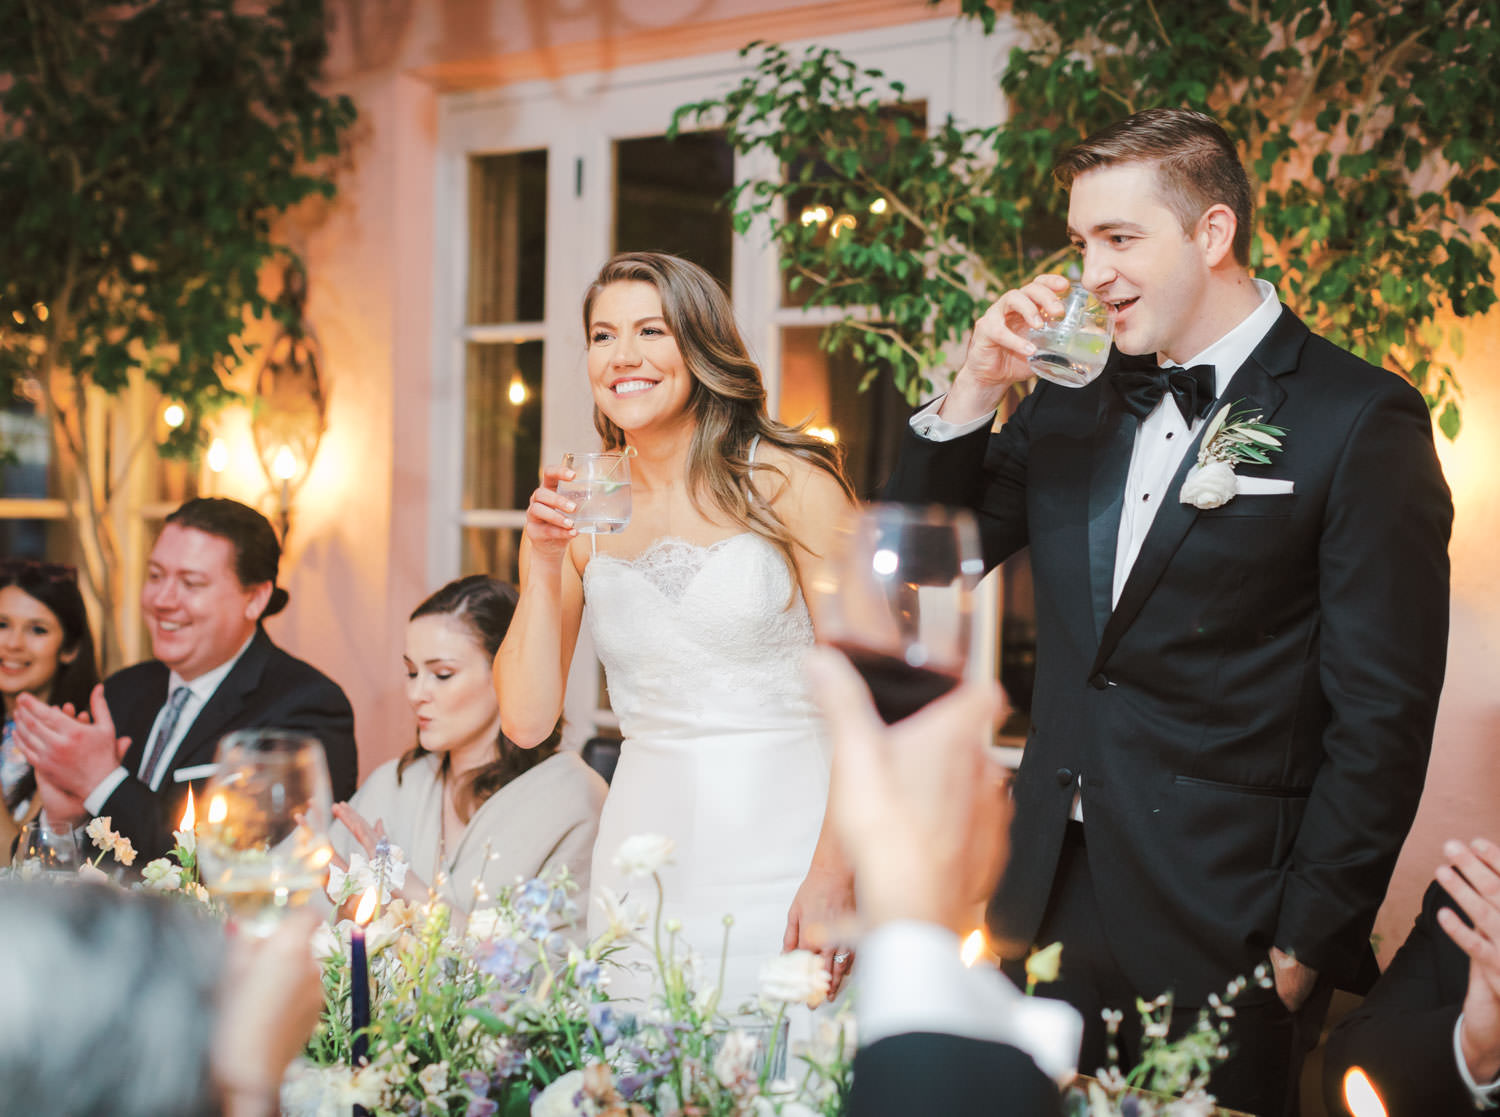 Bride and groom at their wedding reception on a private patio with 26 of their guests. Intimate Wedding at La Valencia Hotel in La Jolla by Cavin Elizabeth Photography